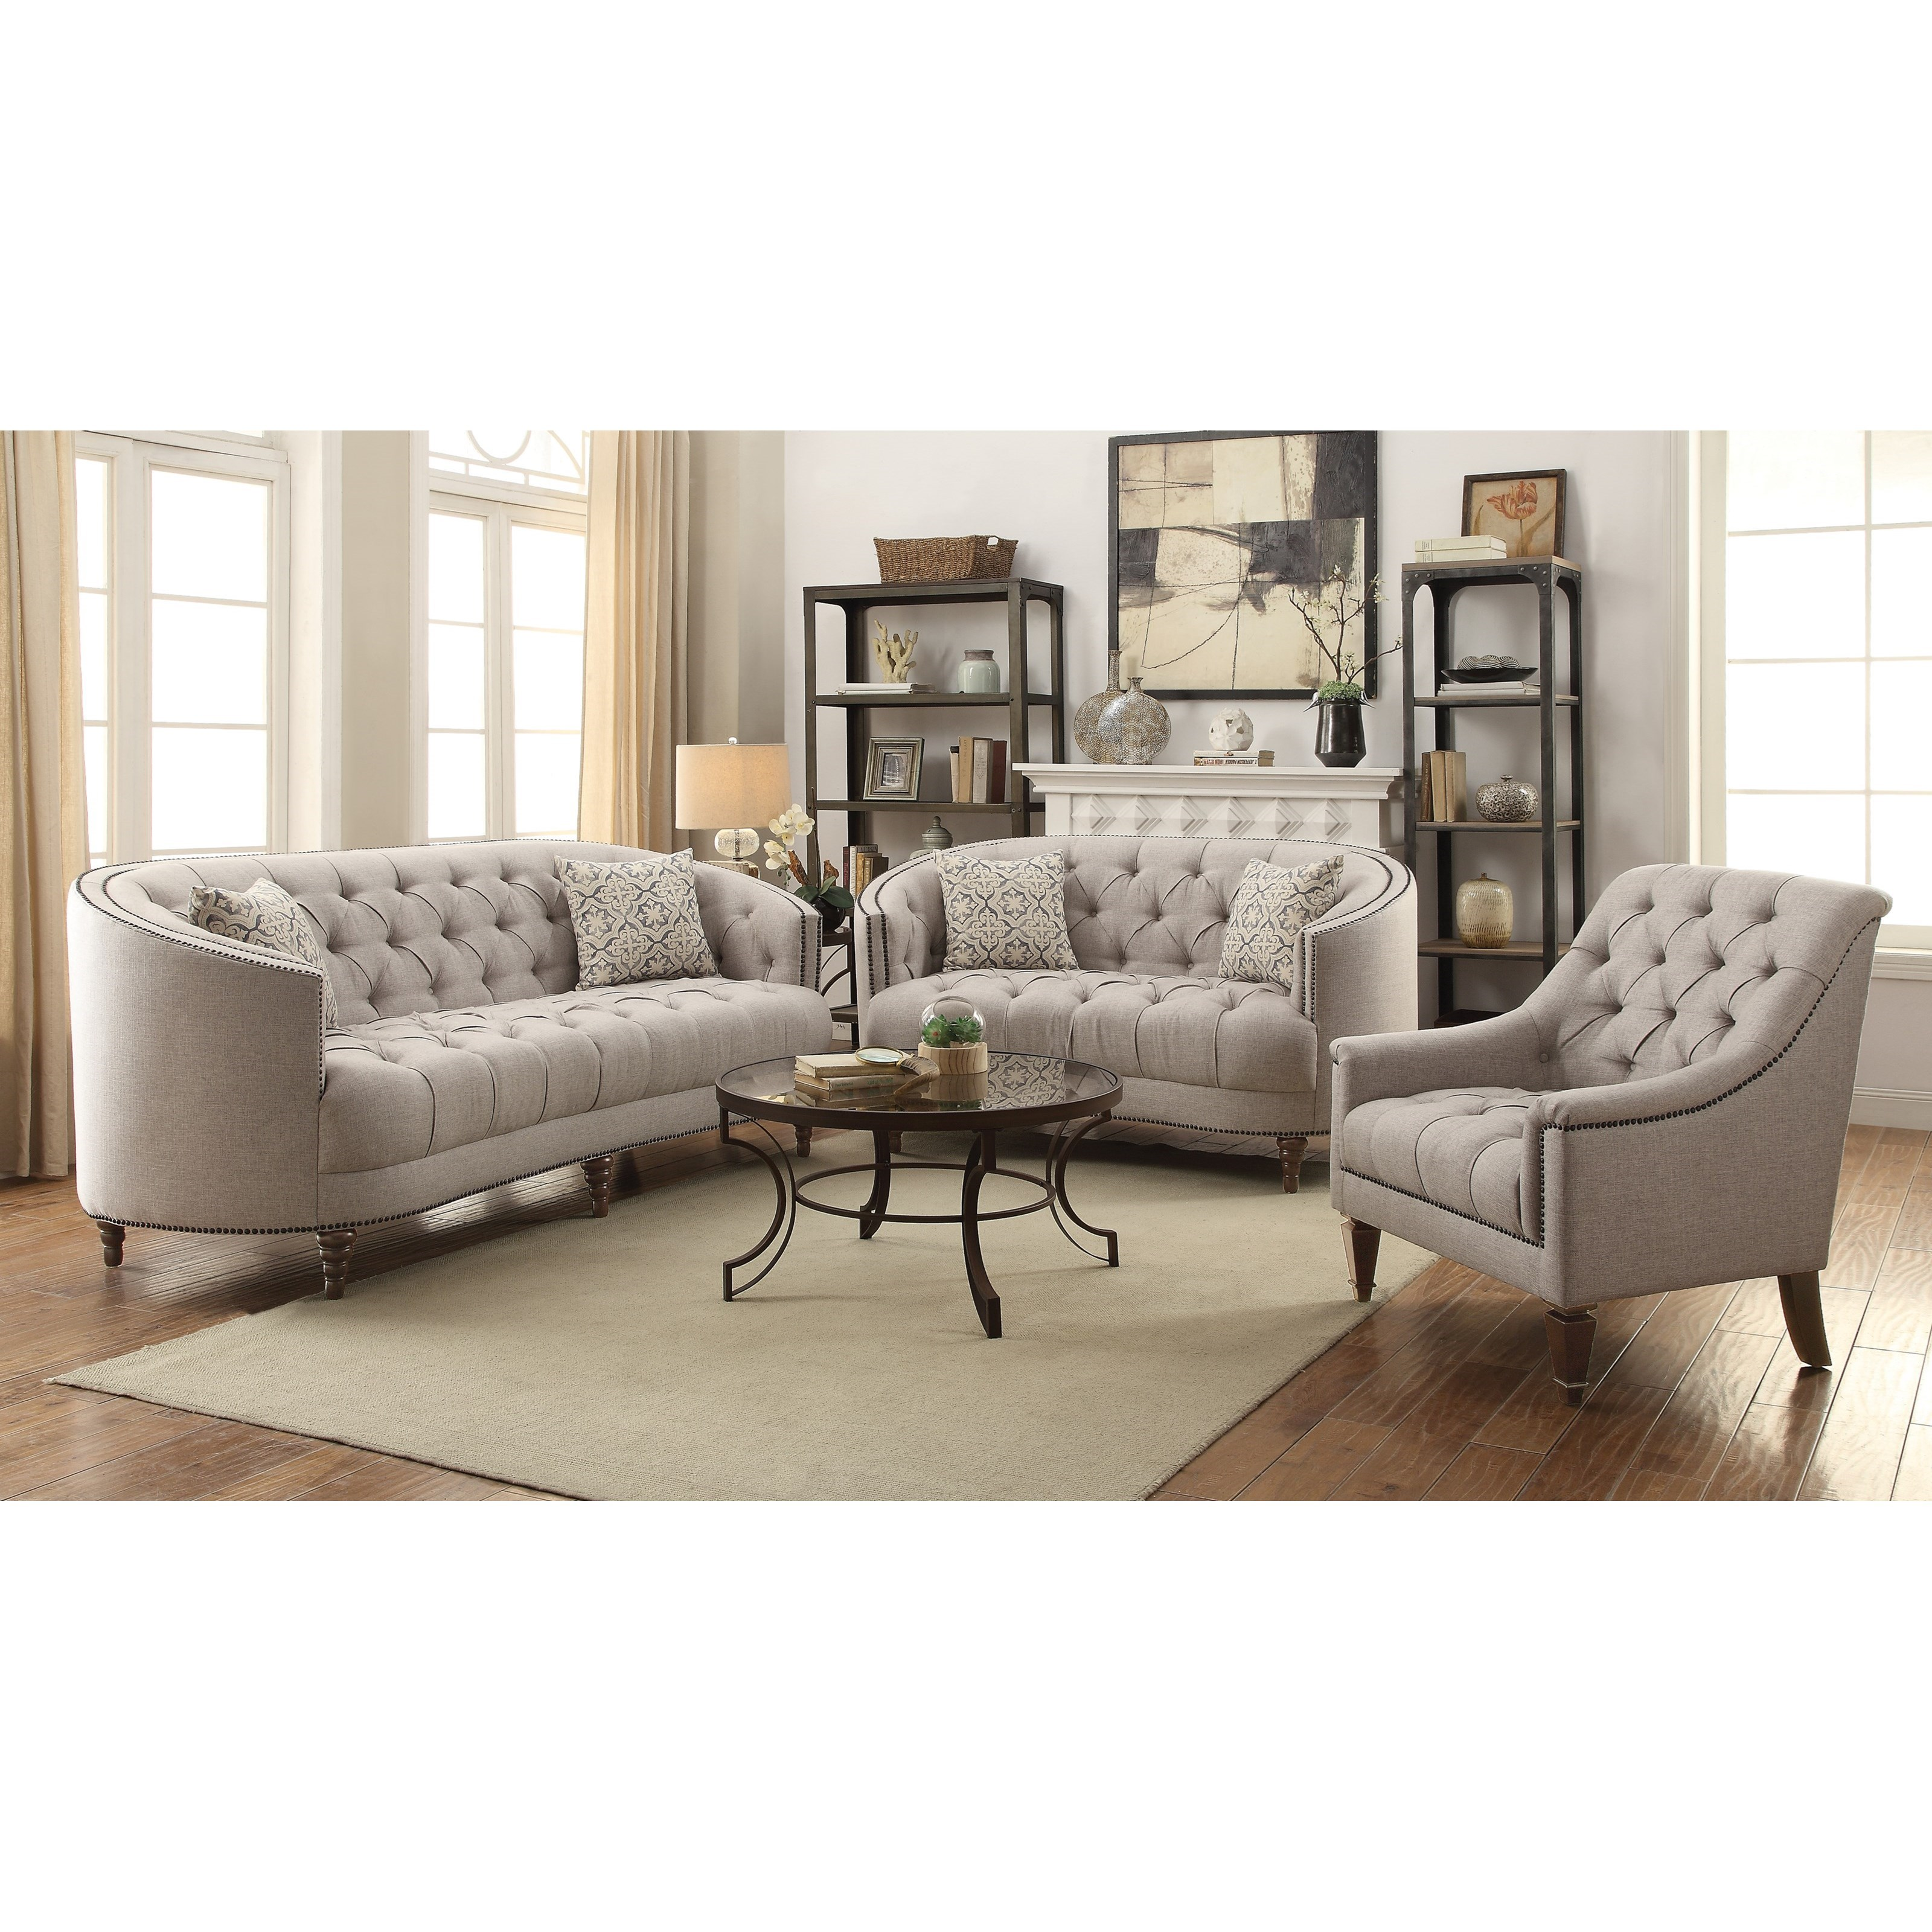 Avonlea Stationary Living Room Group by Coaster at Rife's Home Furniture